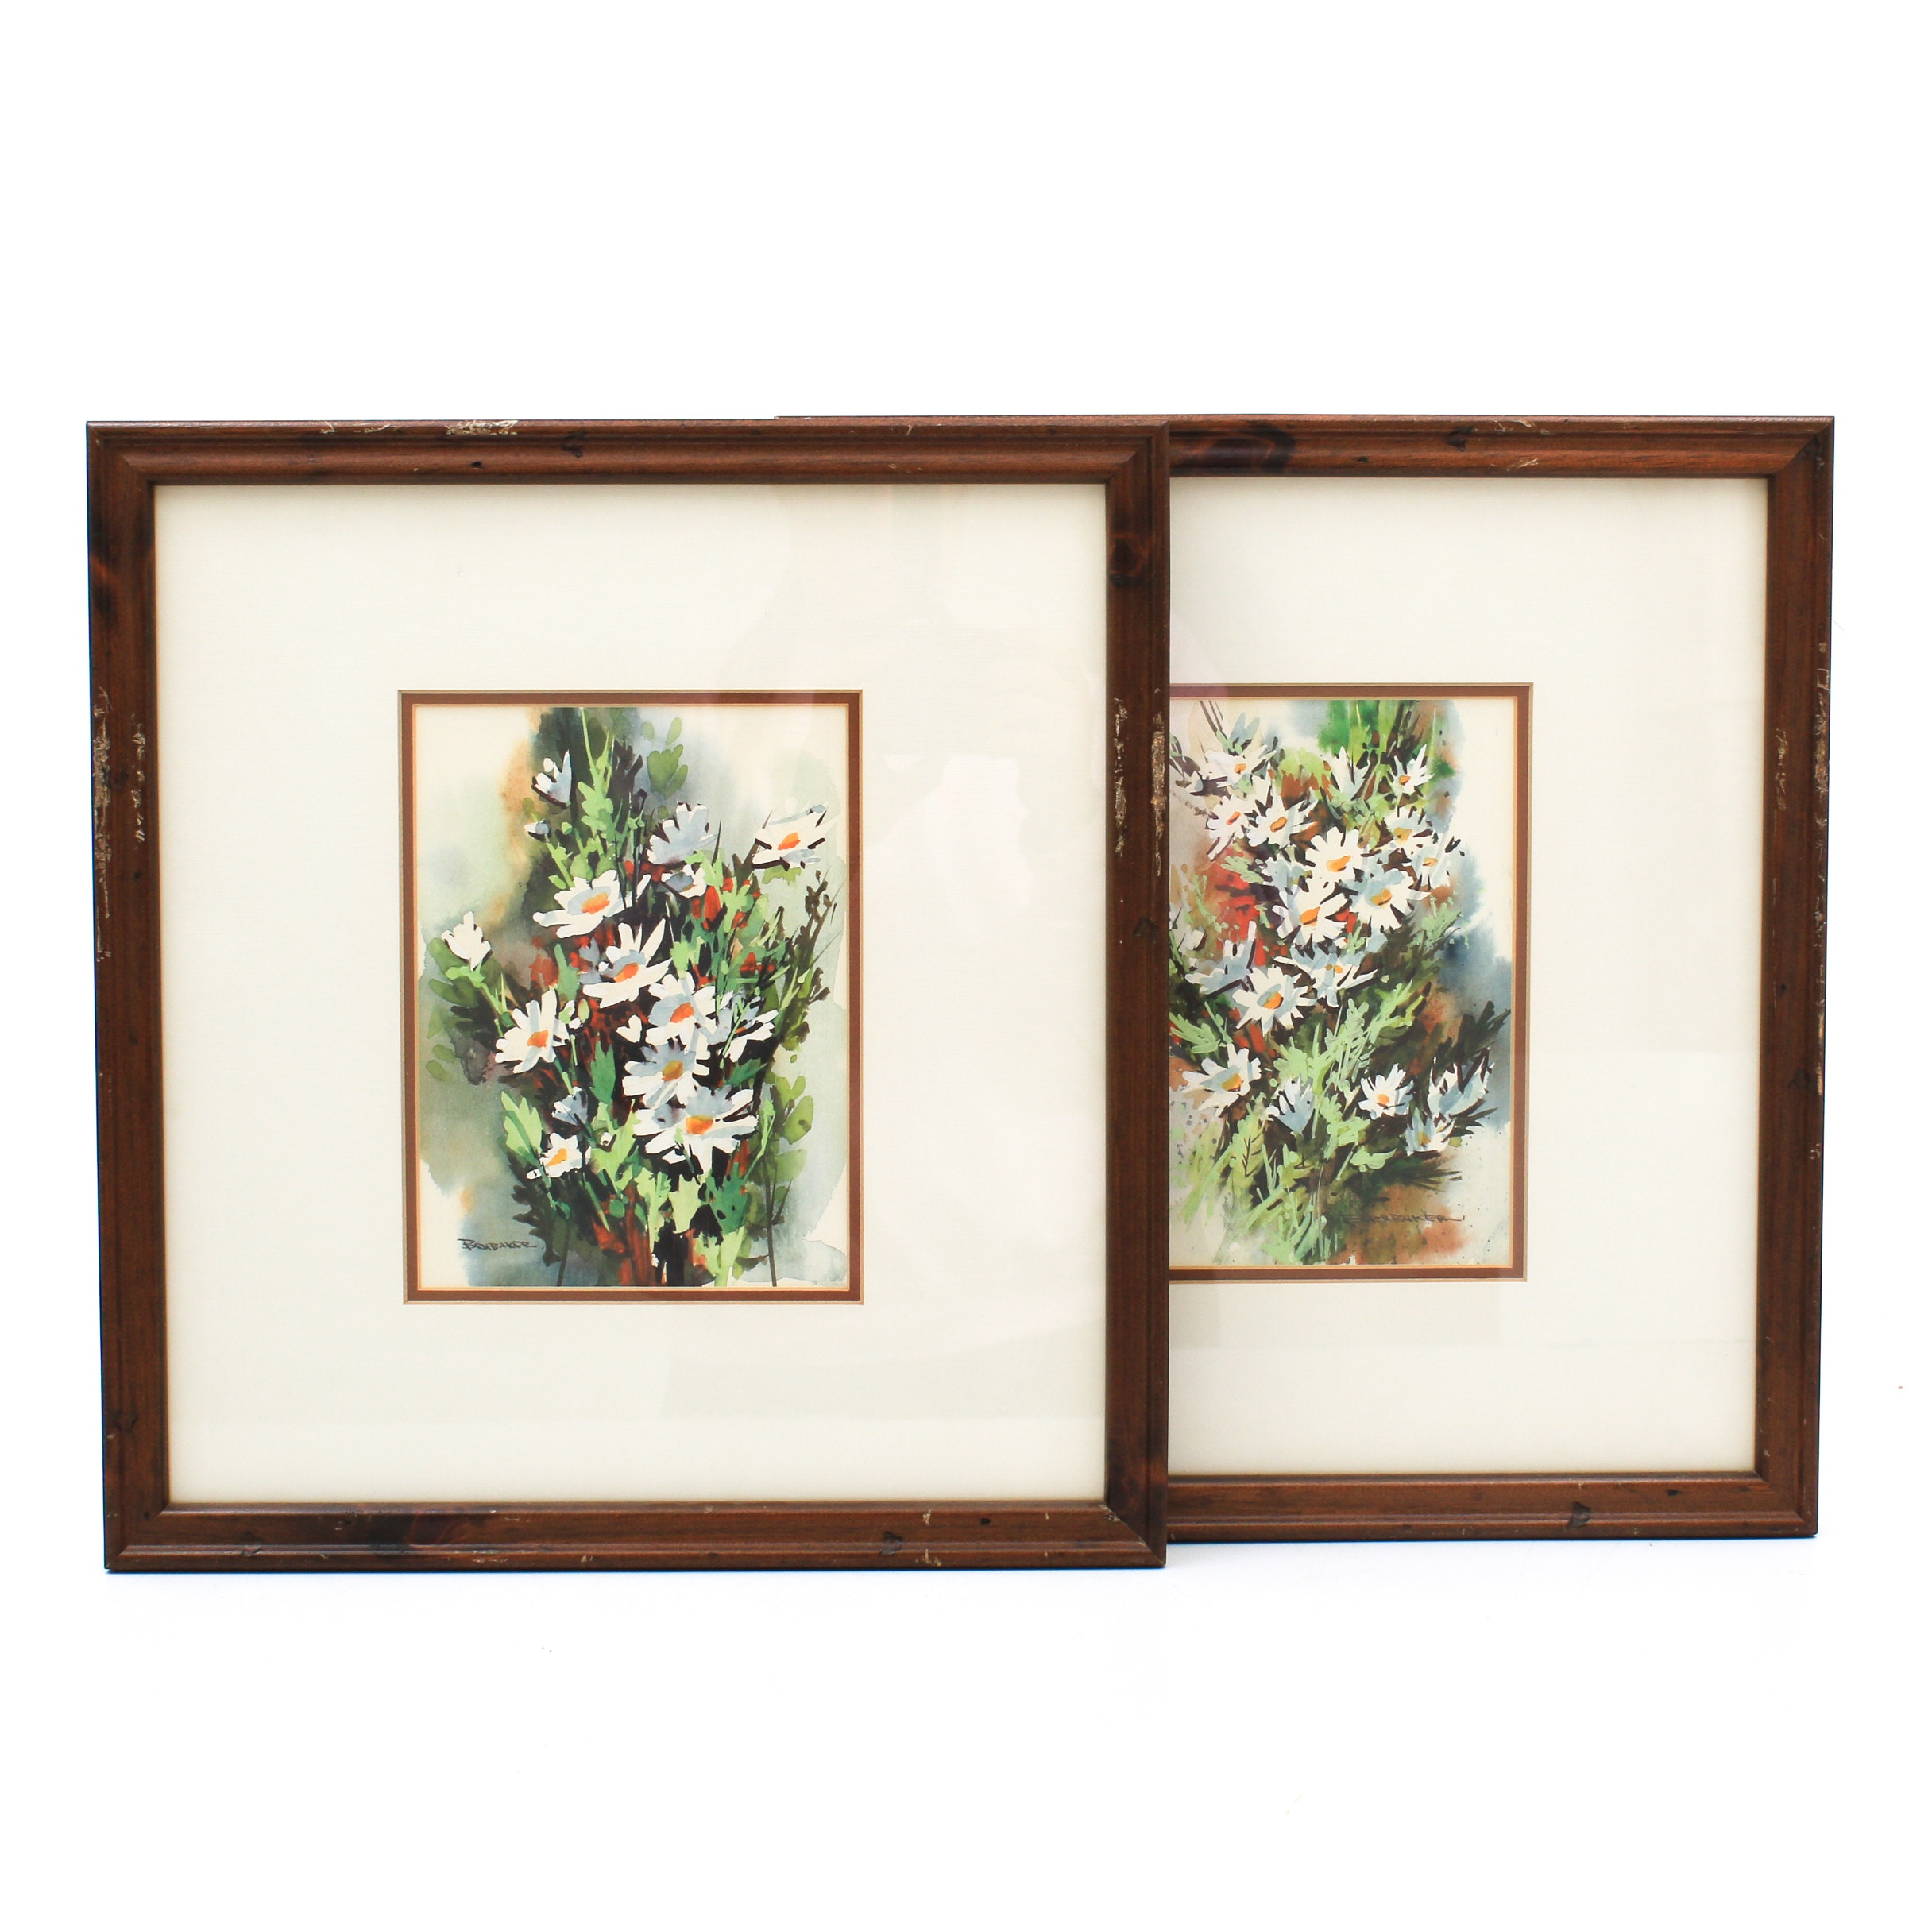 Robert Brubaker Floral Watercolor and Gouache Paintings